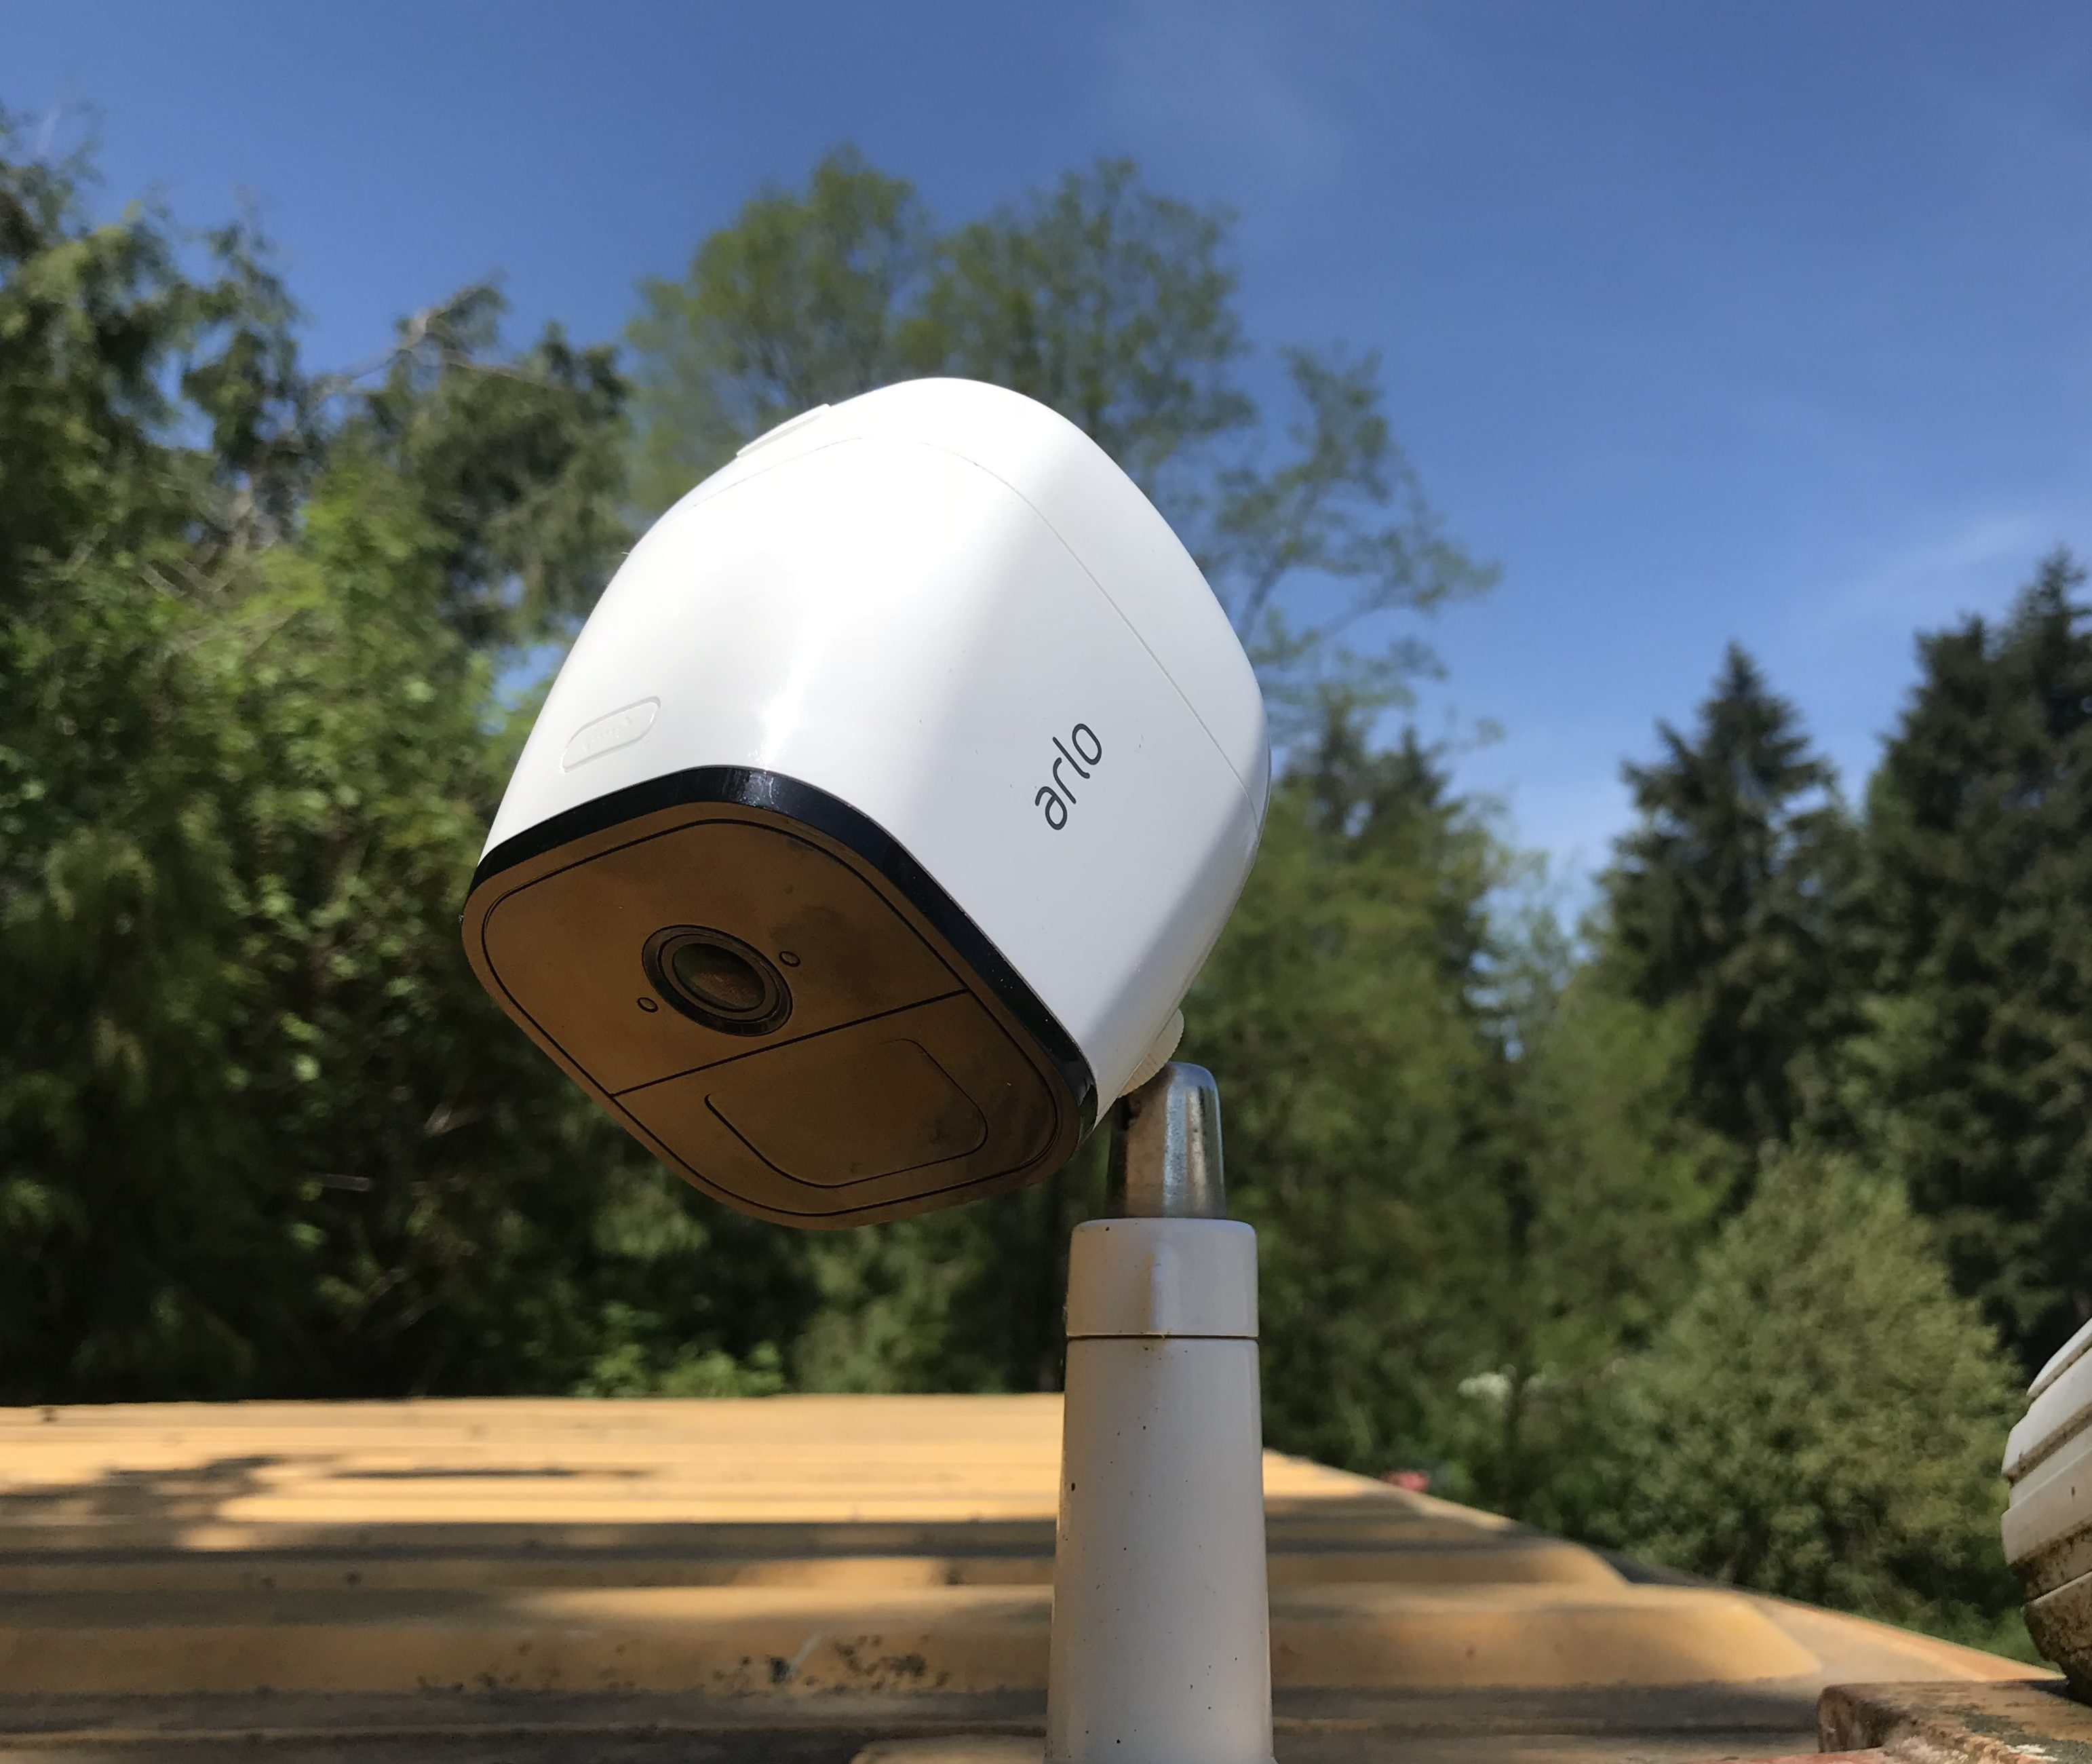 Arlo Go Home Security Camera Review | Best Buy Blog